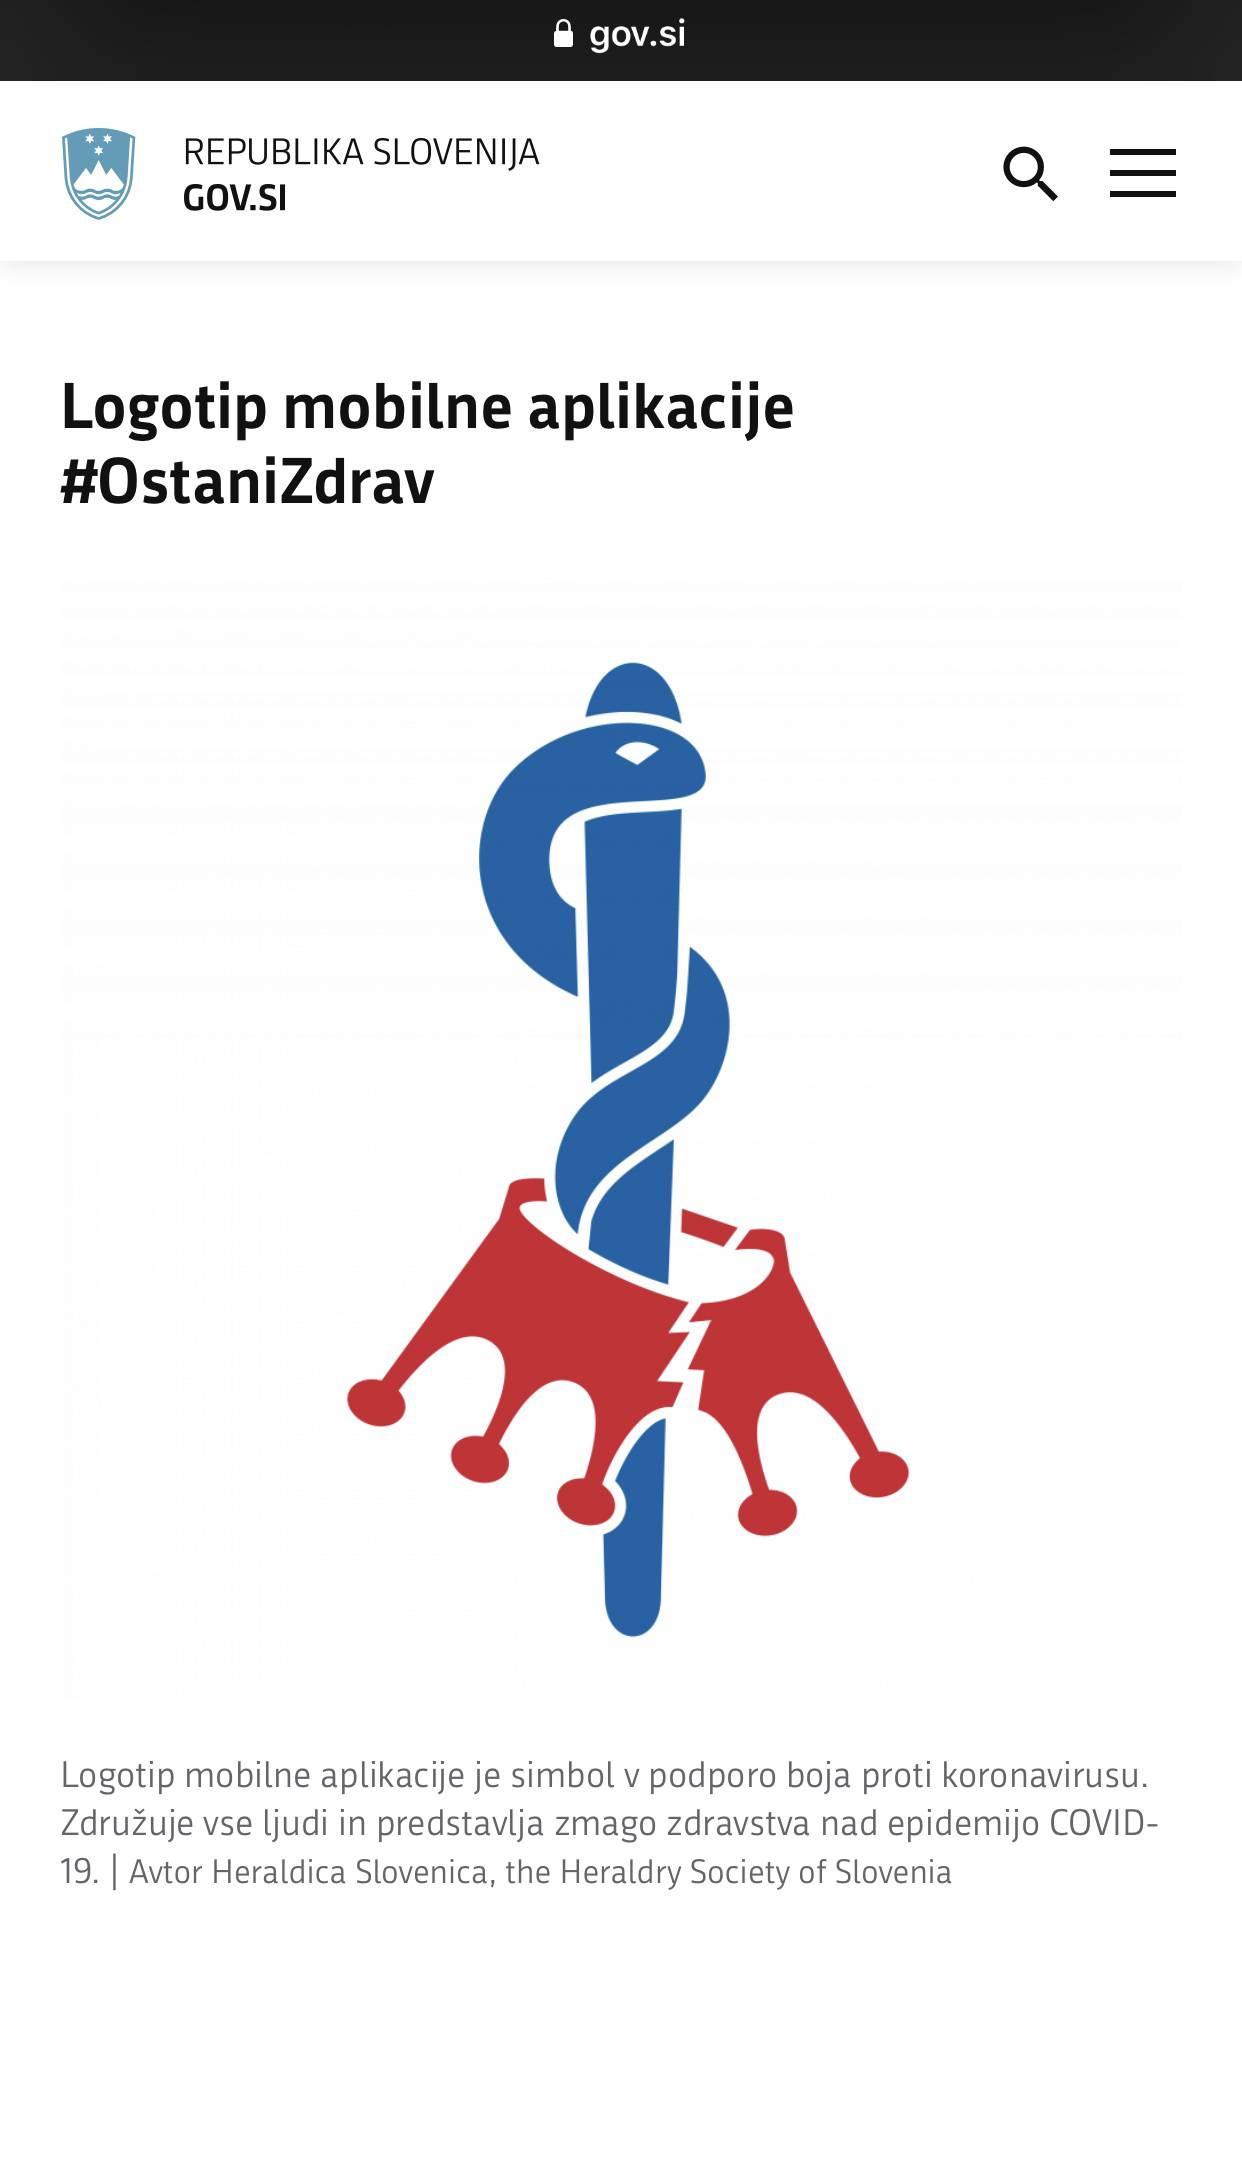 #OstaniZdrav Covid19 mobile application logo, August 2020.